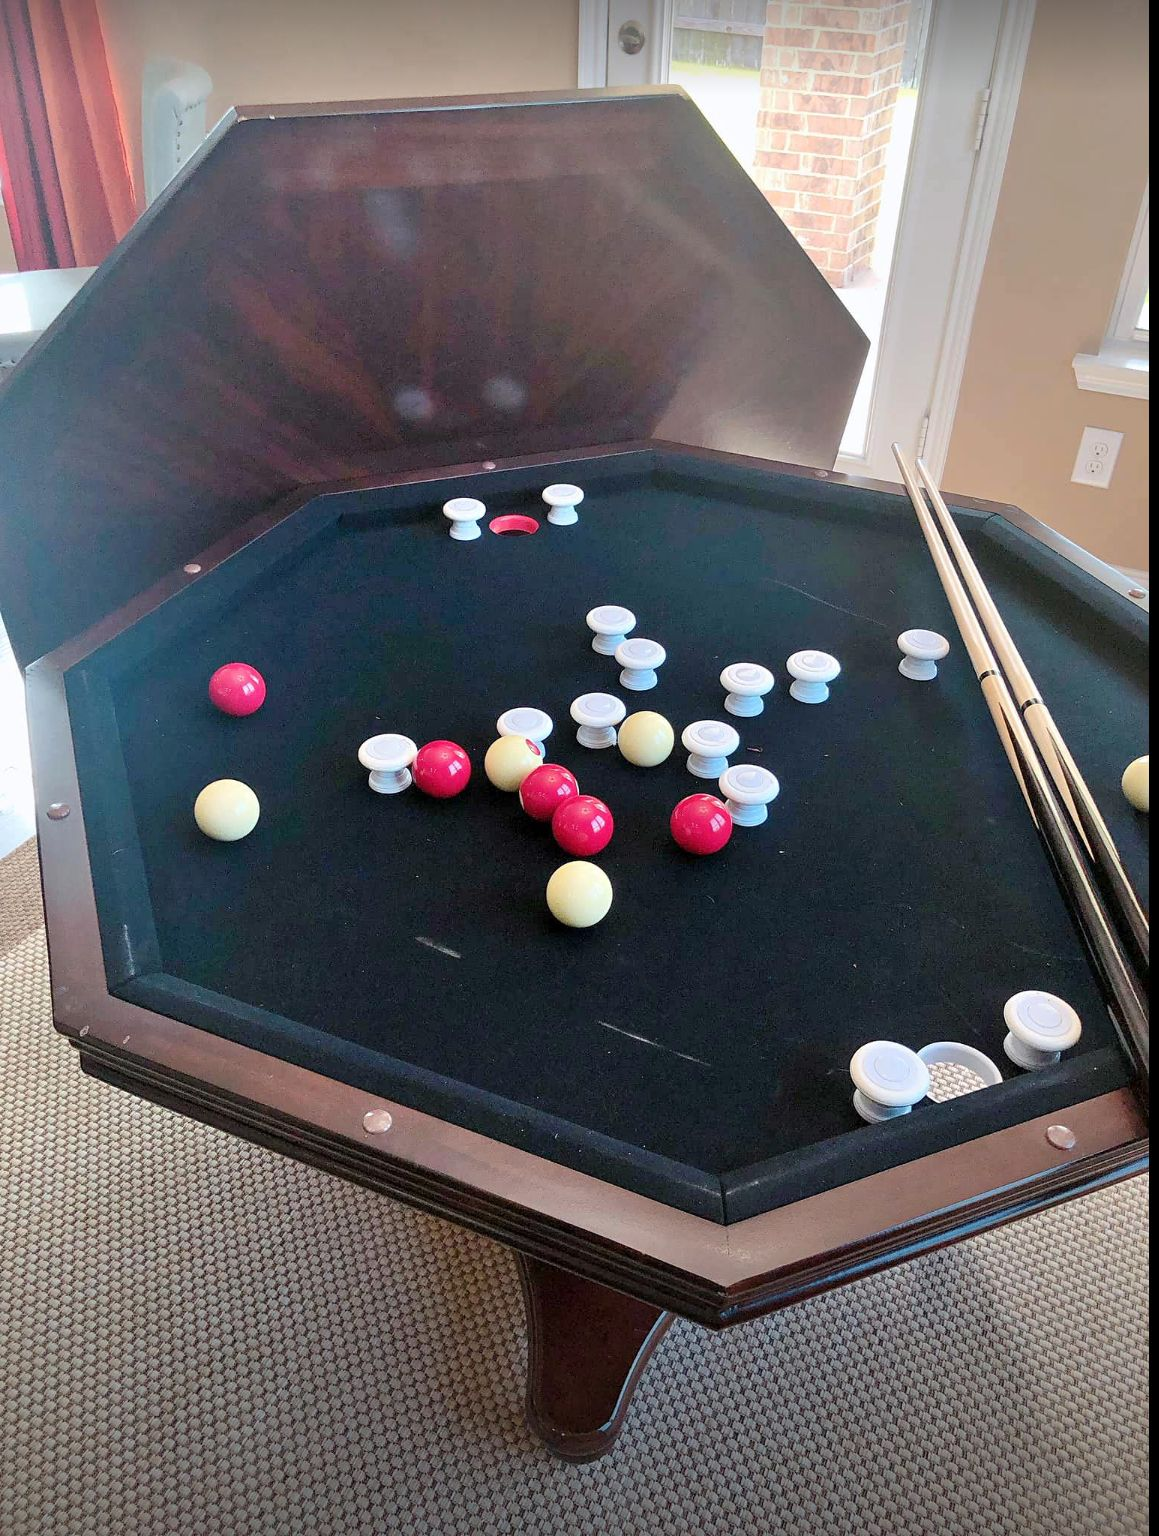 Pin by Jordans on Game Room Poker table, Game room, Decor